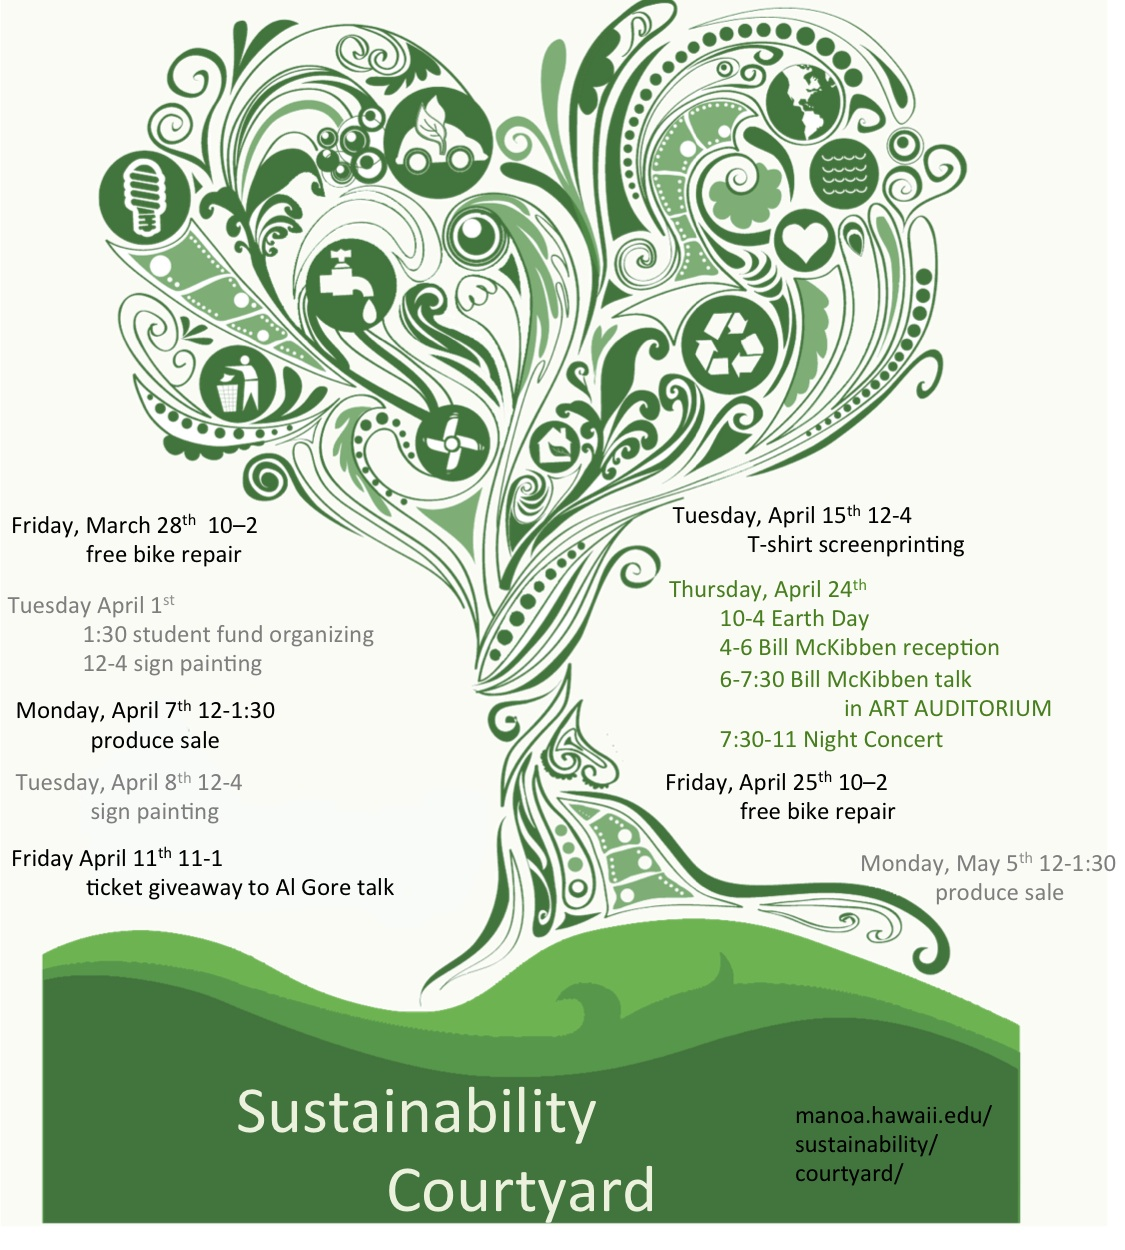 Sustainability courtyard events flyer_jpg